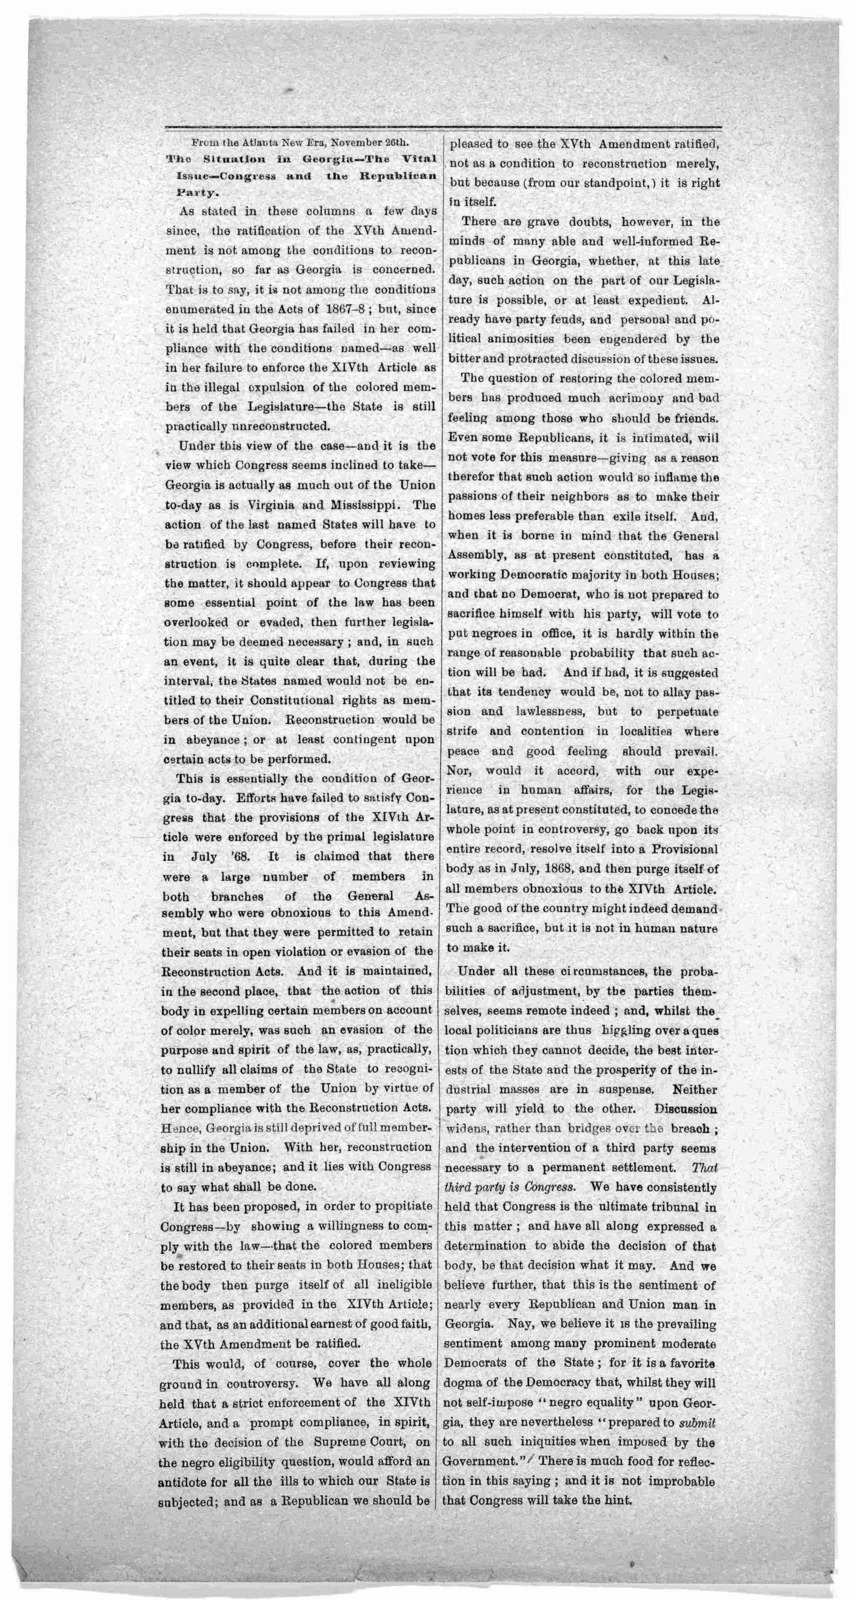 The situation in Georgia - The vital issue - Congress and the Republican party. From the Atlanta New Era. November 26th [1869?].